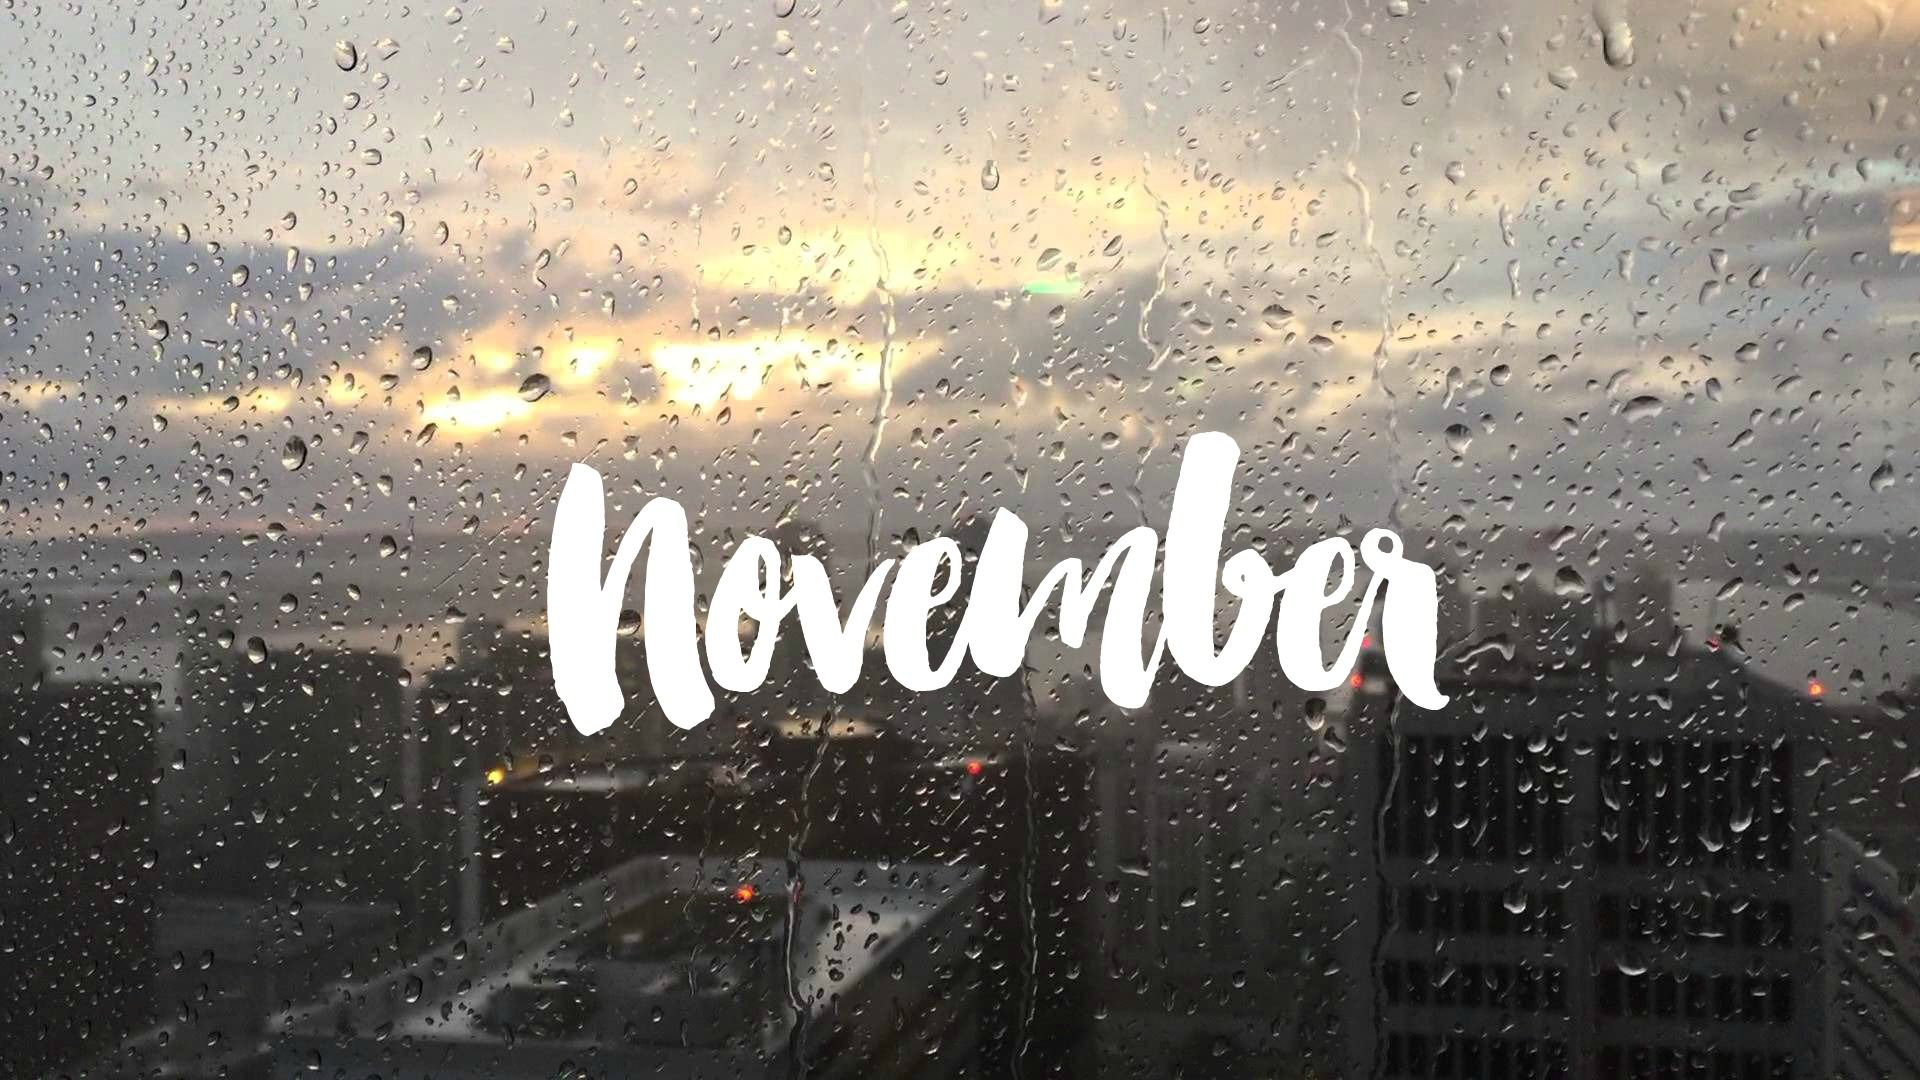 n o v e m b e r november november quote image desktop wallpaper screen phone